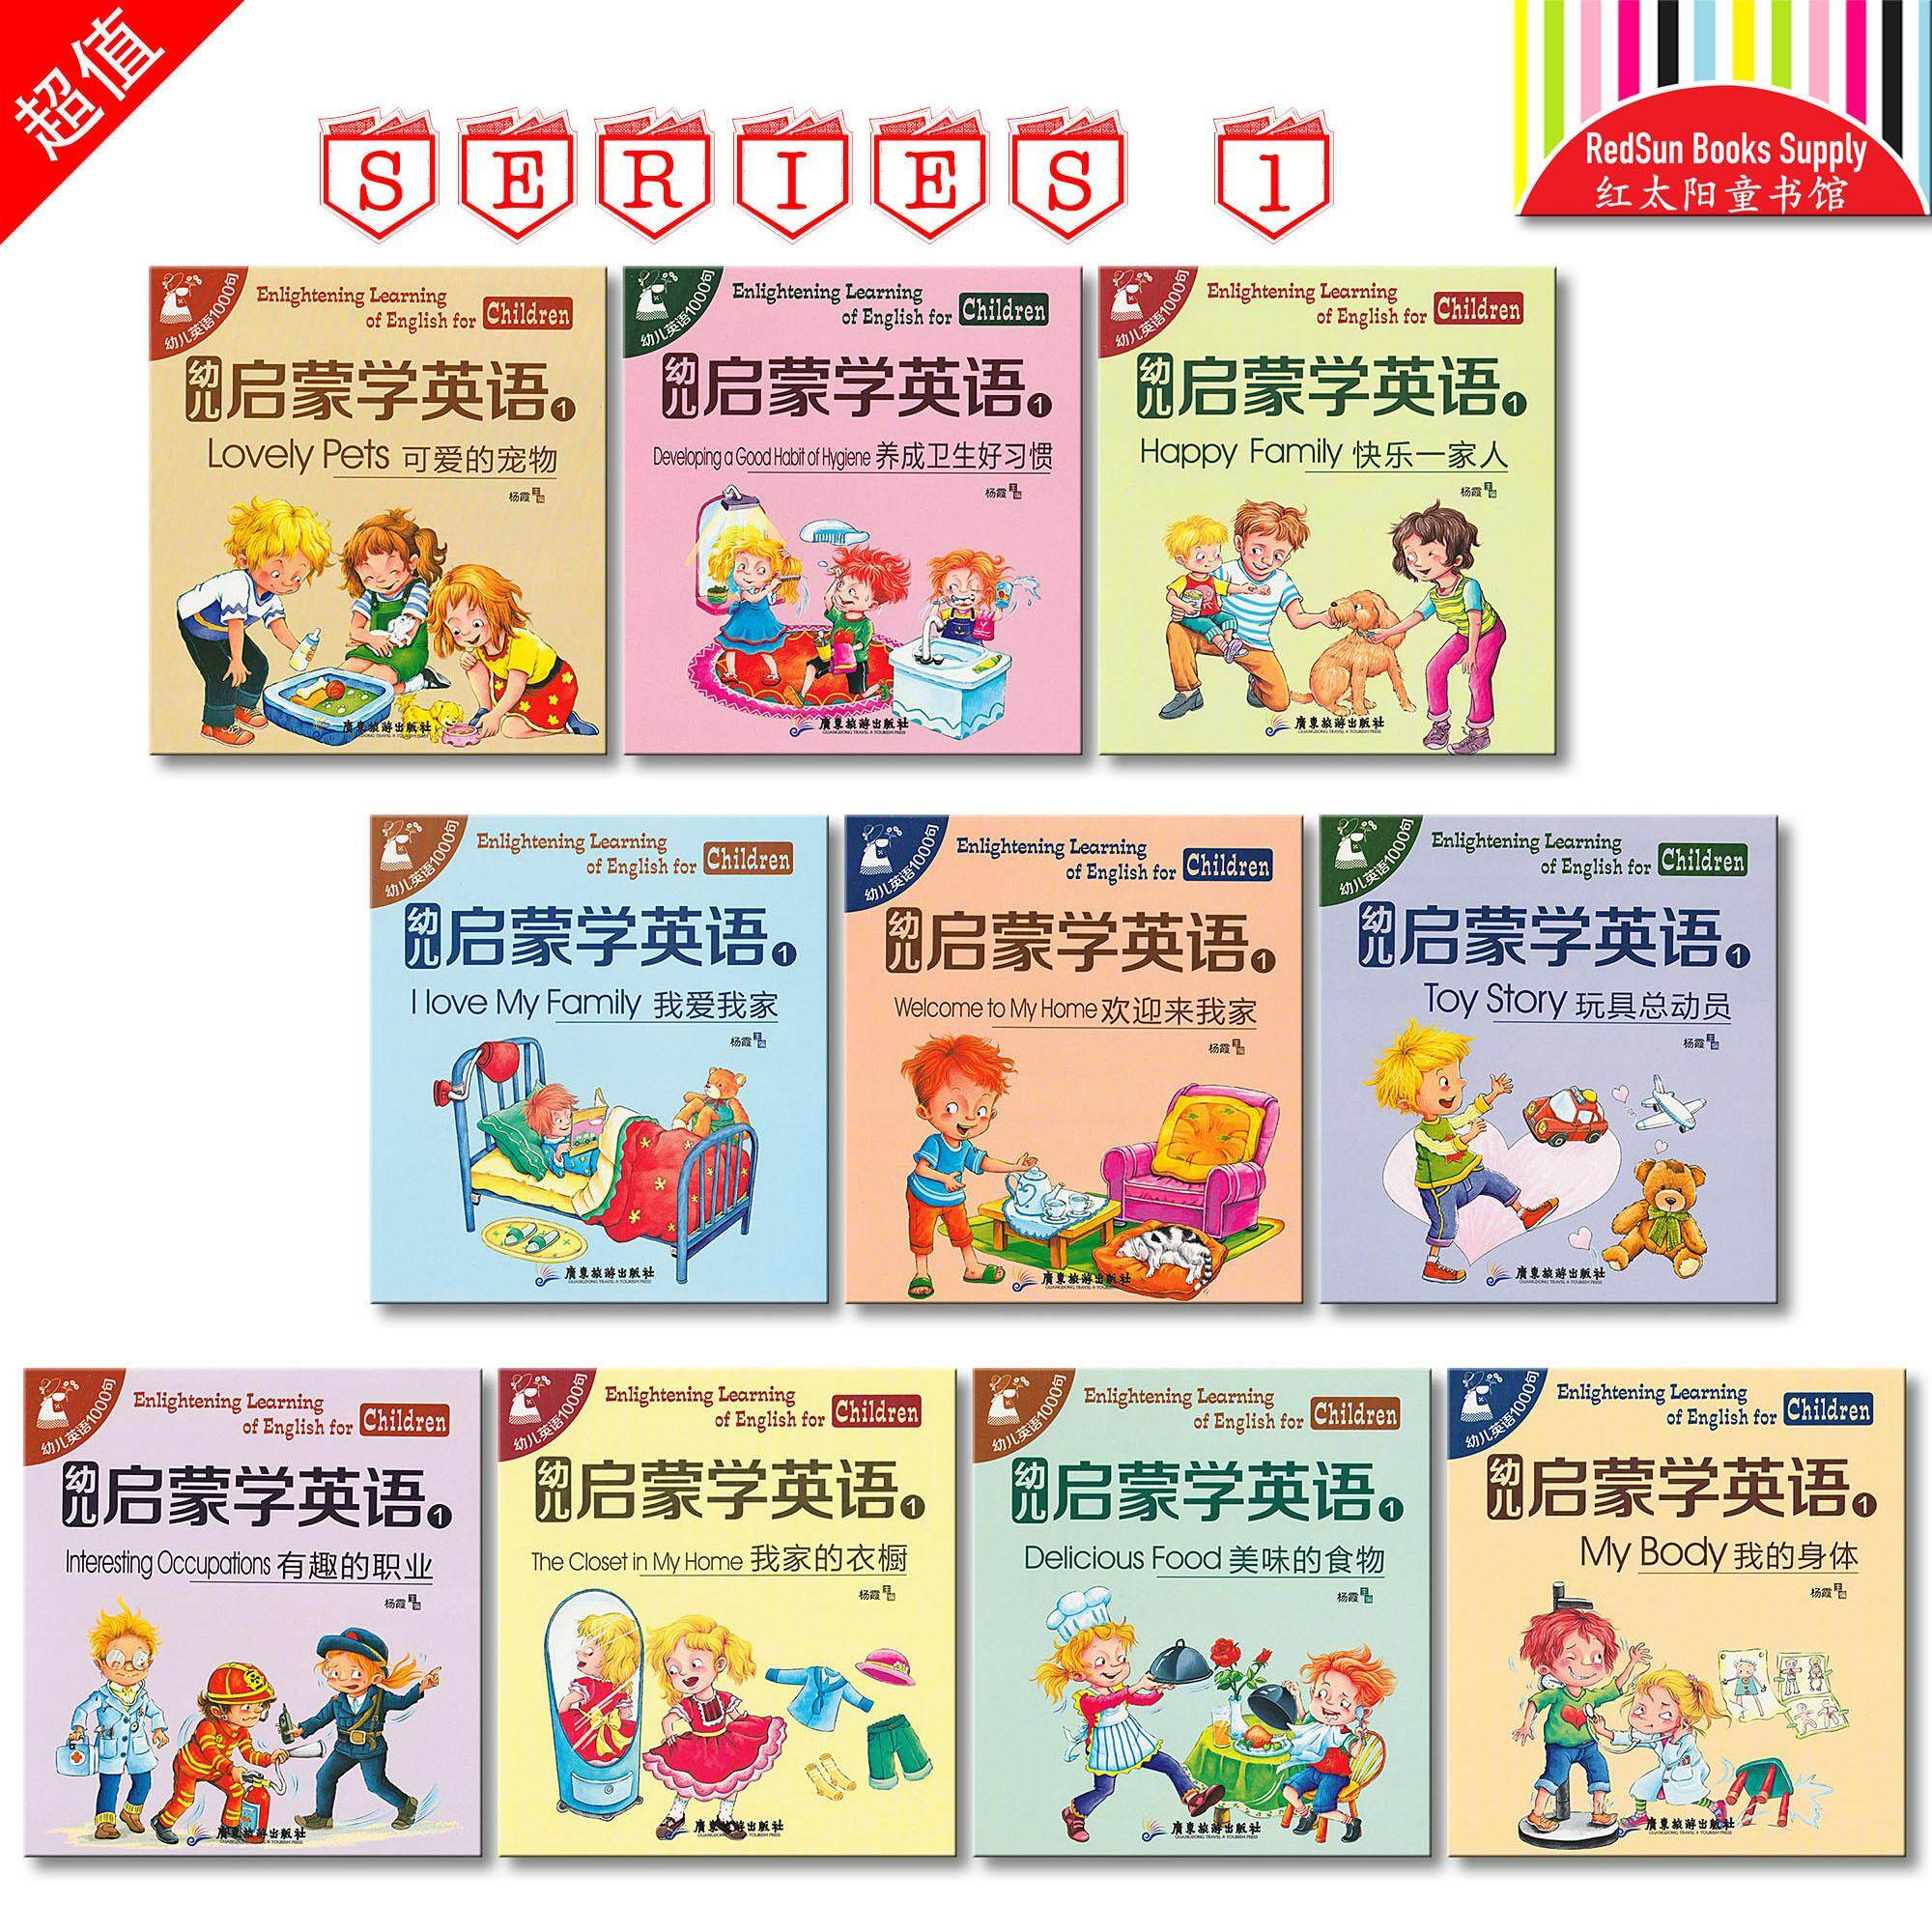 Enlightening Learning of English for Children 10 Books_Series 1